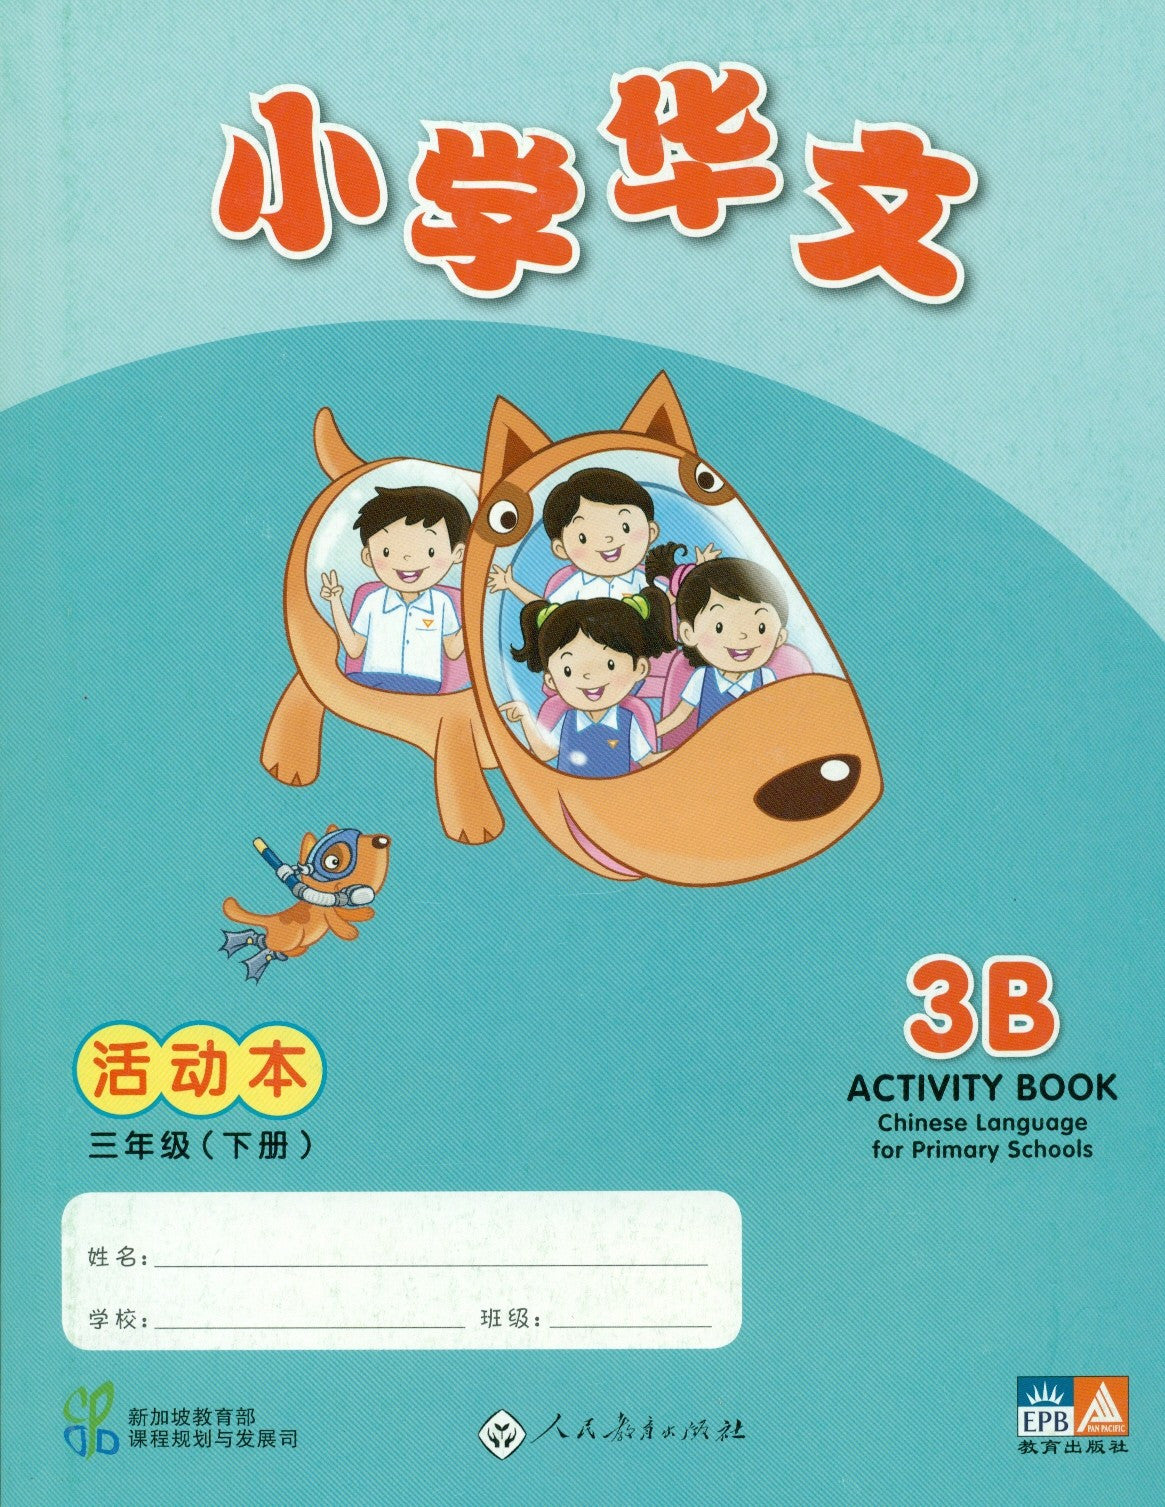 Chinese Language for Primary Schools: Activity Book 3B